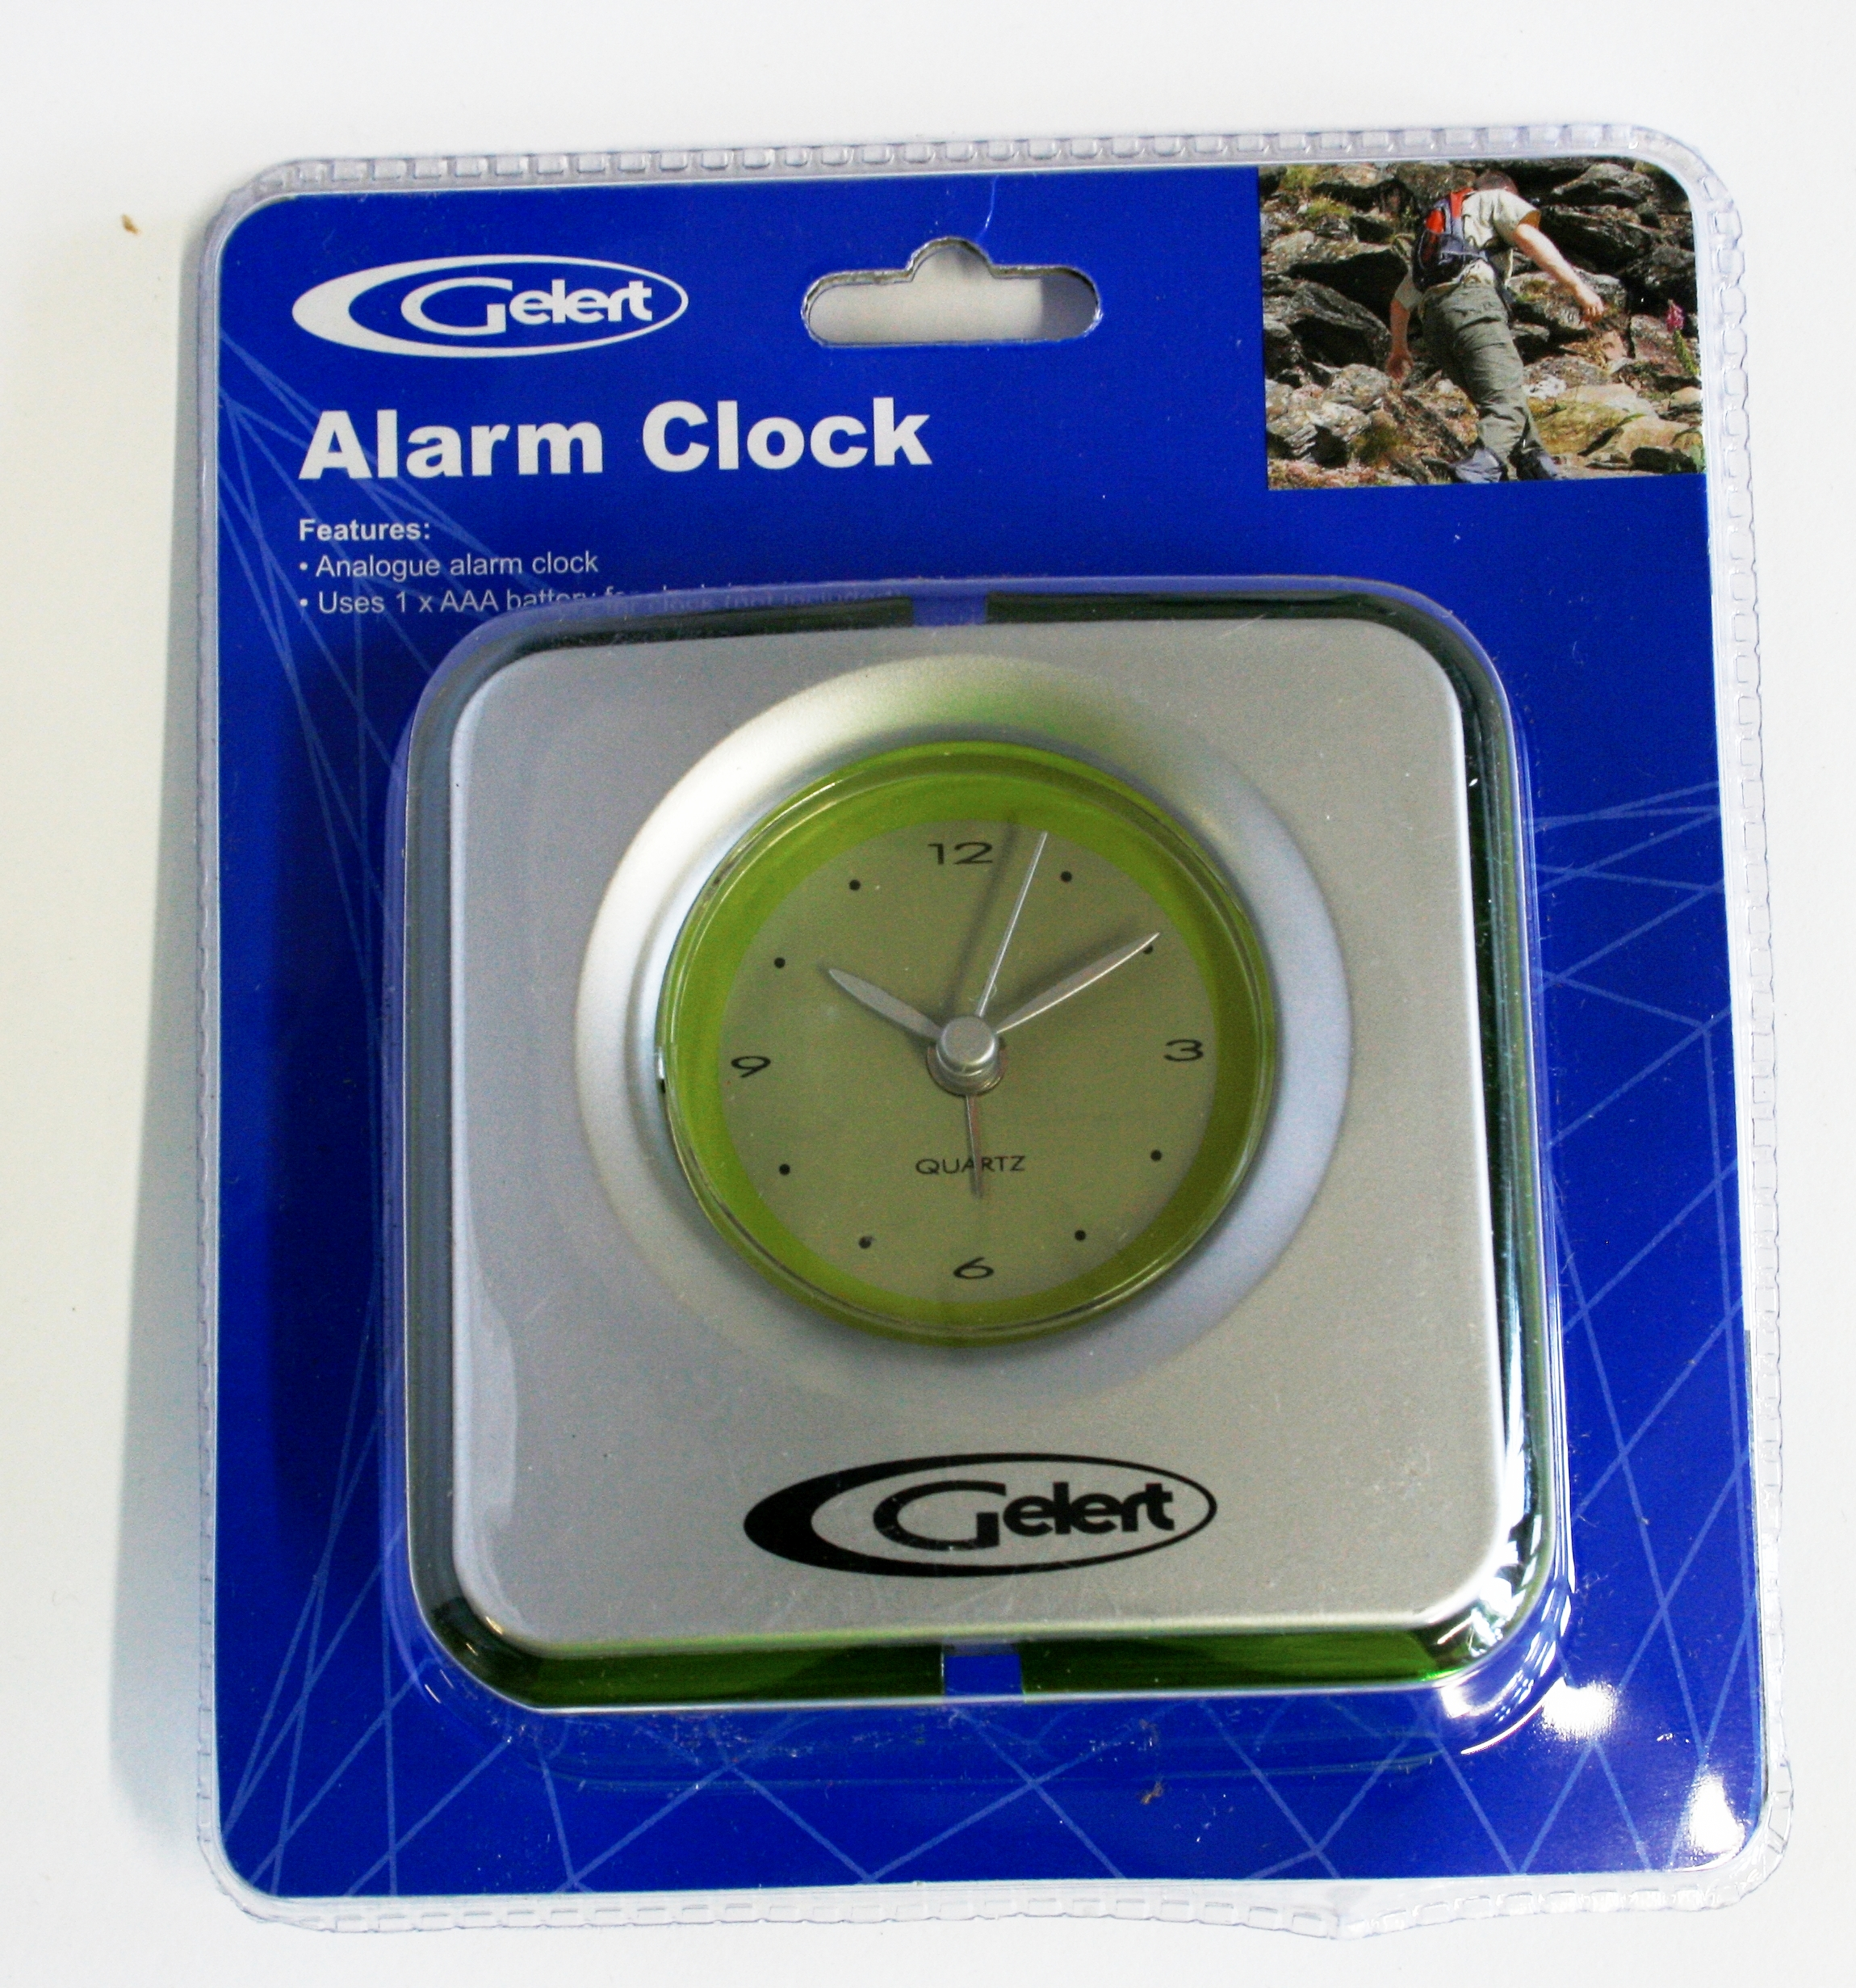 Gelert Acc326 Alarm Clock From No1brands4you Alarm